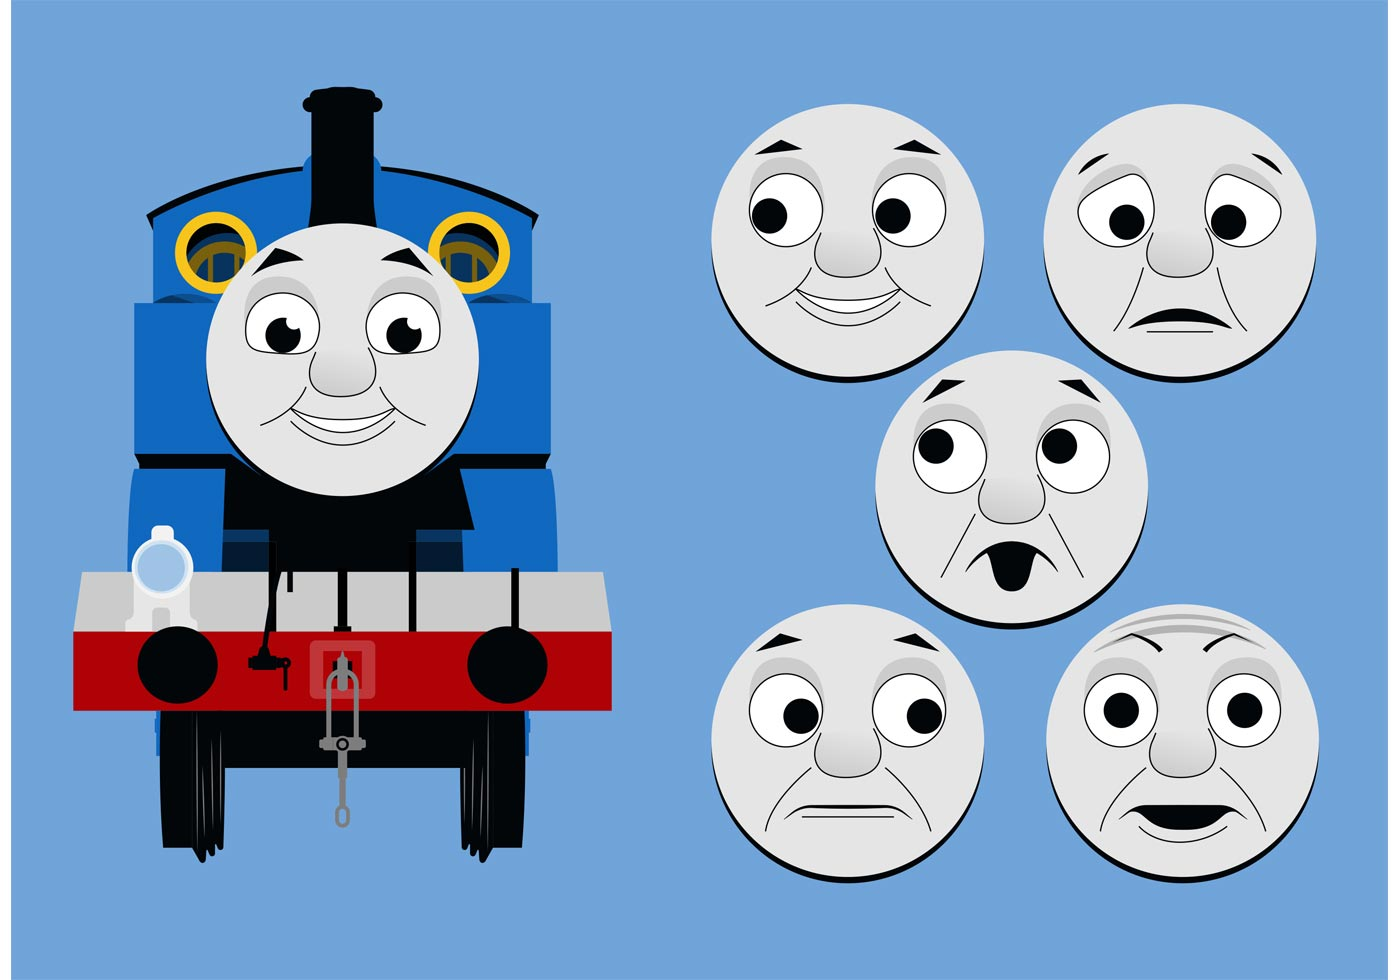 Free Thomas The Train Clipart at GetDrawings.com.